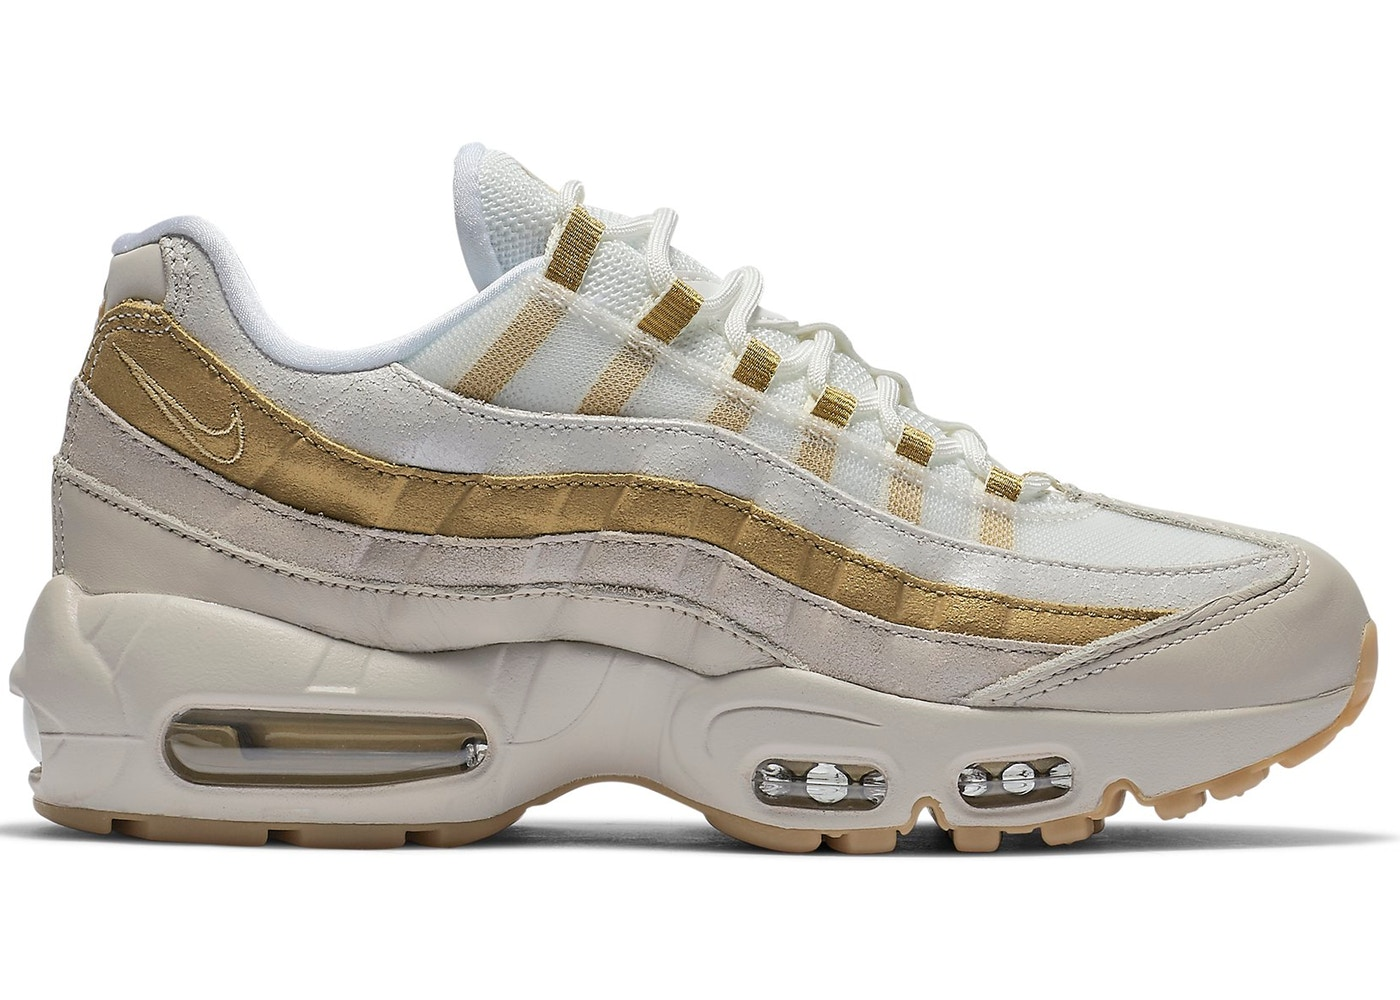 pretty nice 0261a ba058 Sell. or Ask. Size: 9.5W. View All Bids. Air Max 95 Desert Sand Metallic  Gold ...